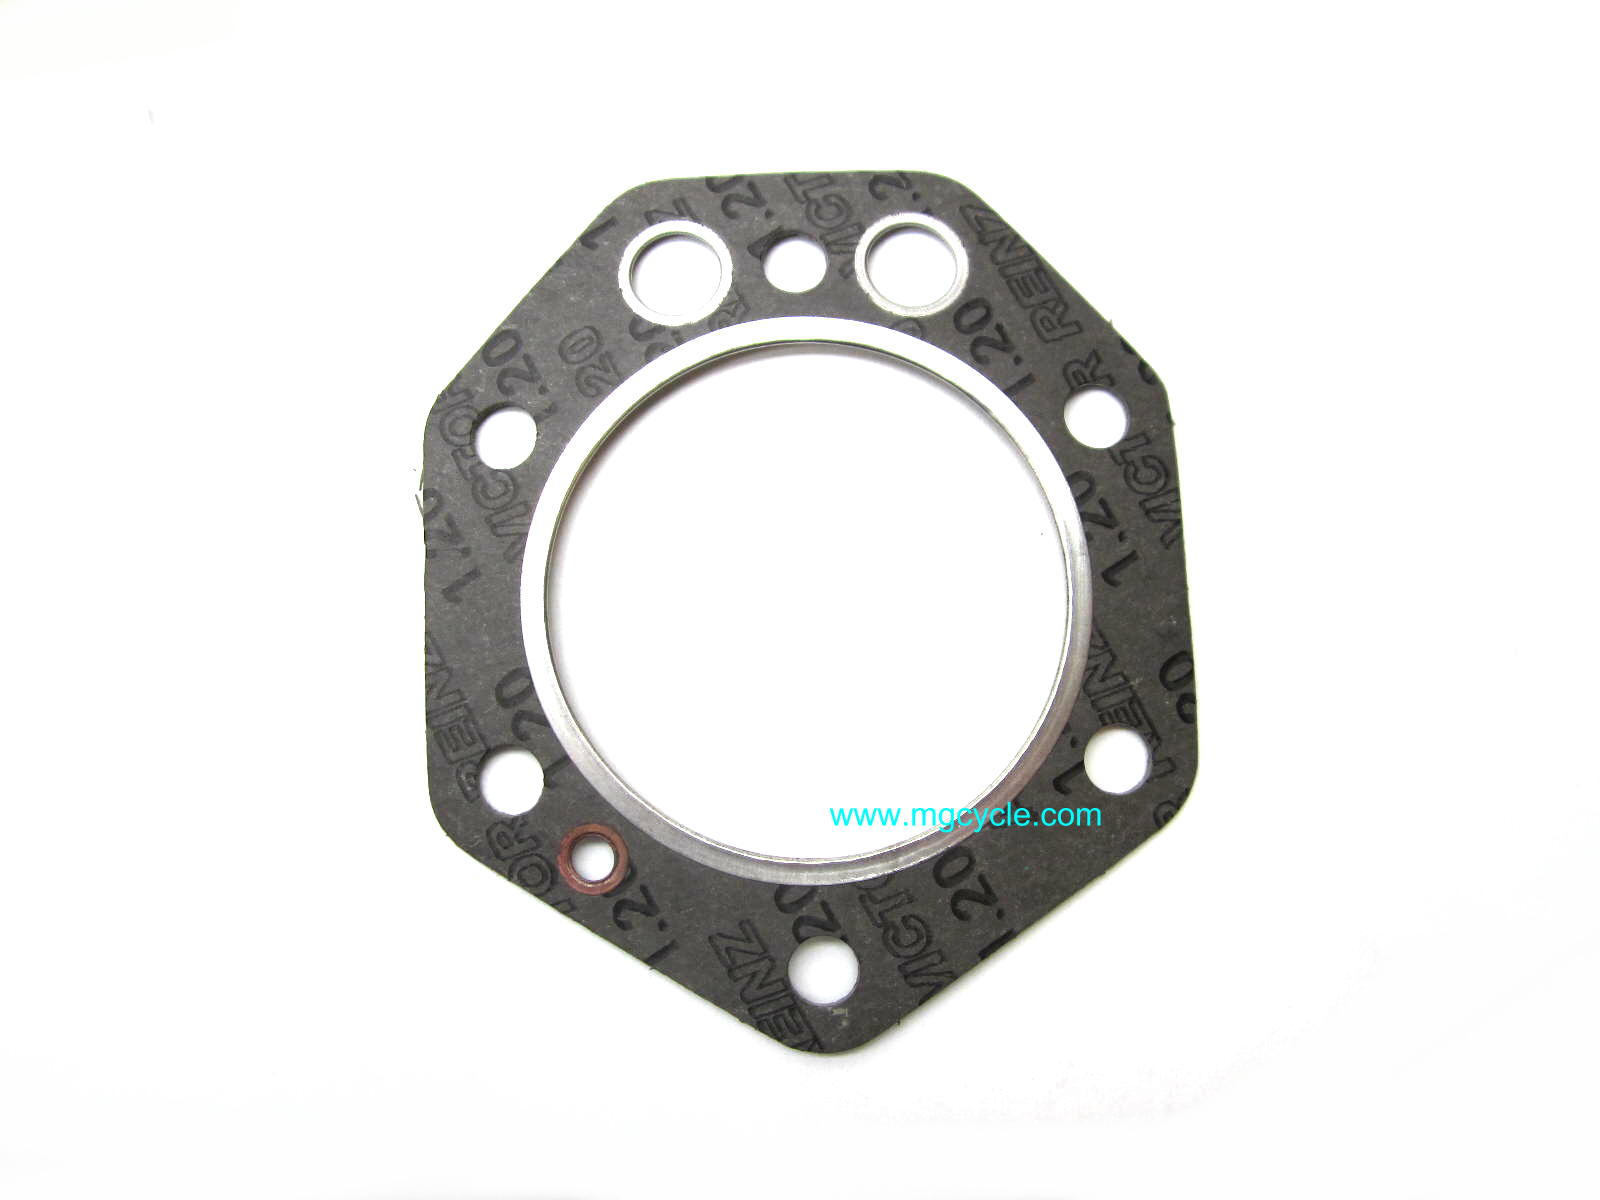 Head gasket for 850cc T, T3, T4, LeMans, LM II GU14022050